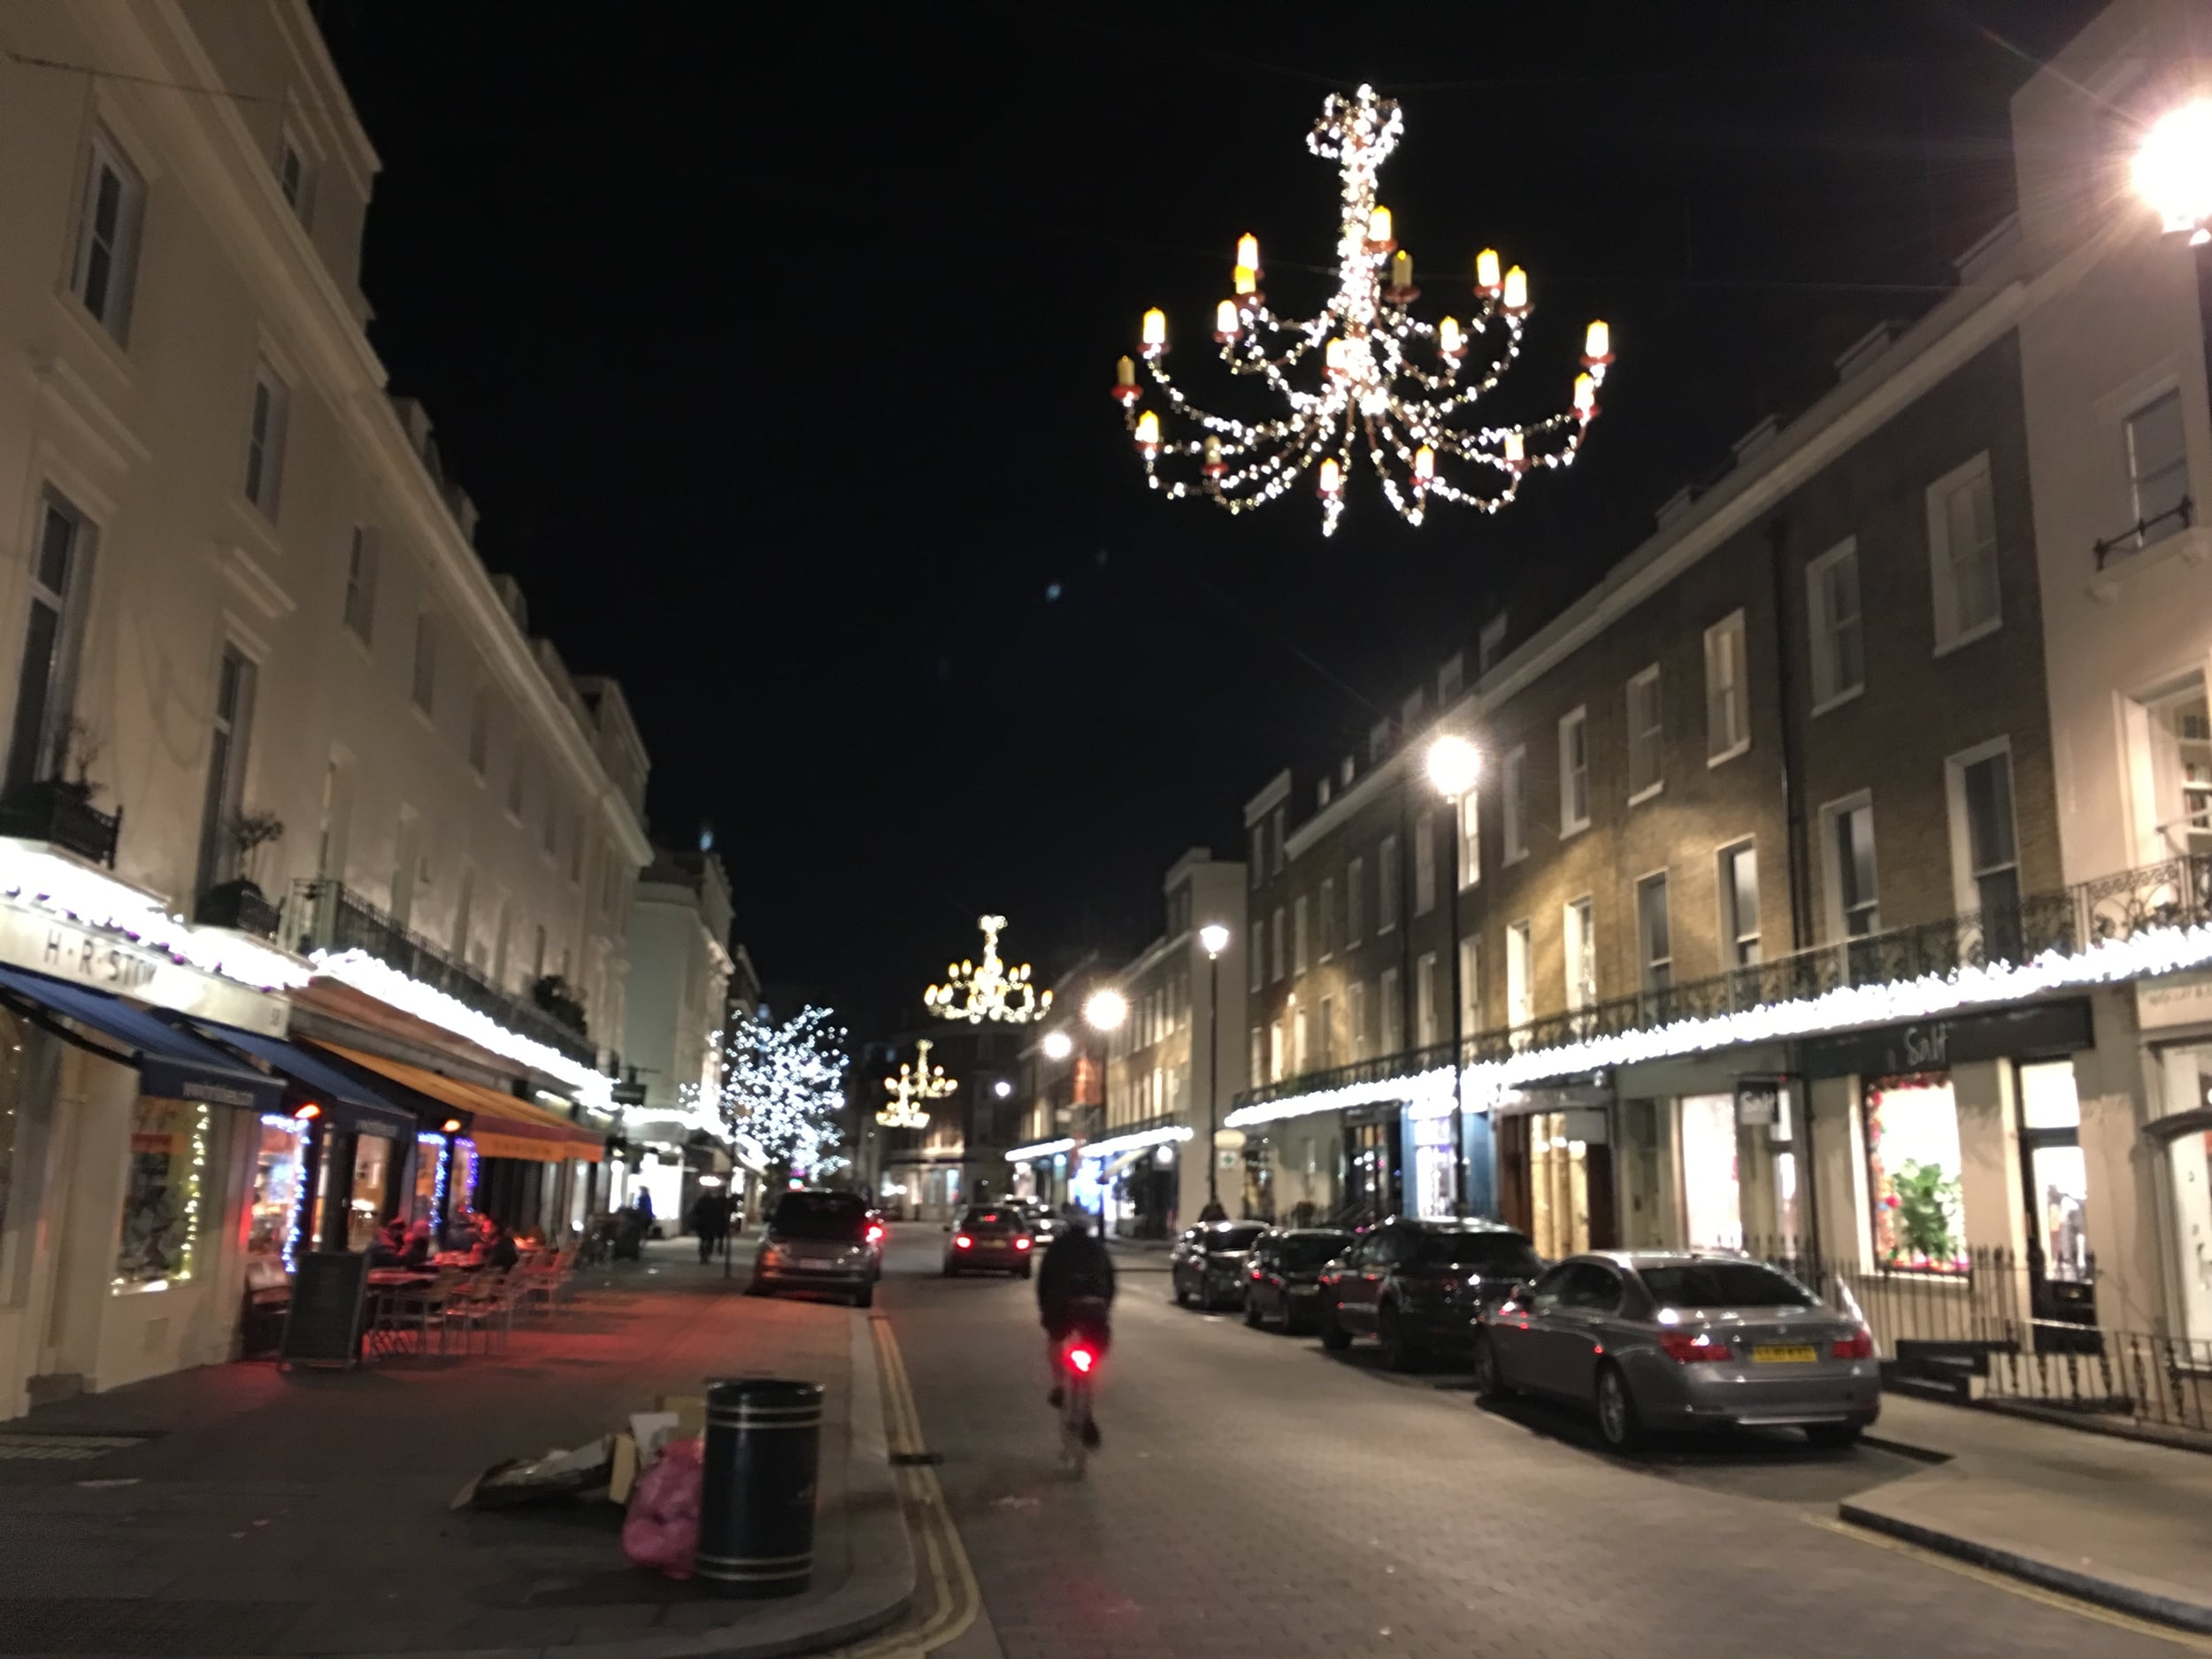 Swanky street decorations in Belgravia